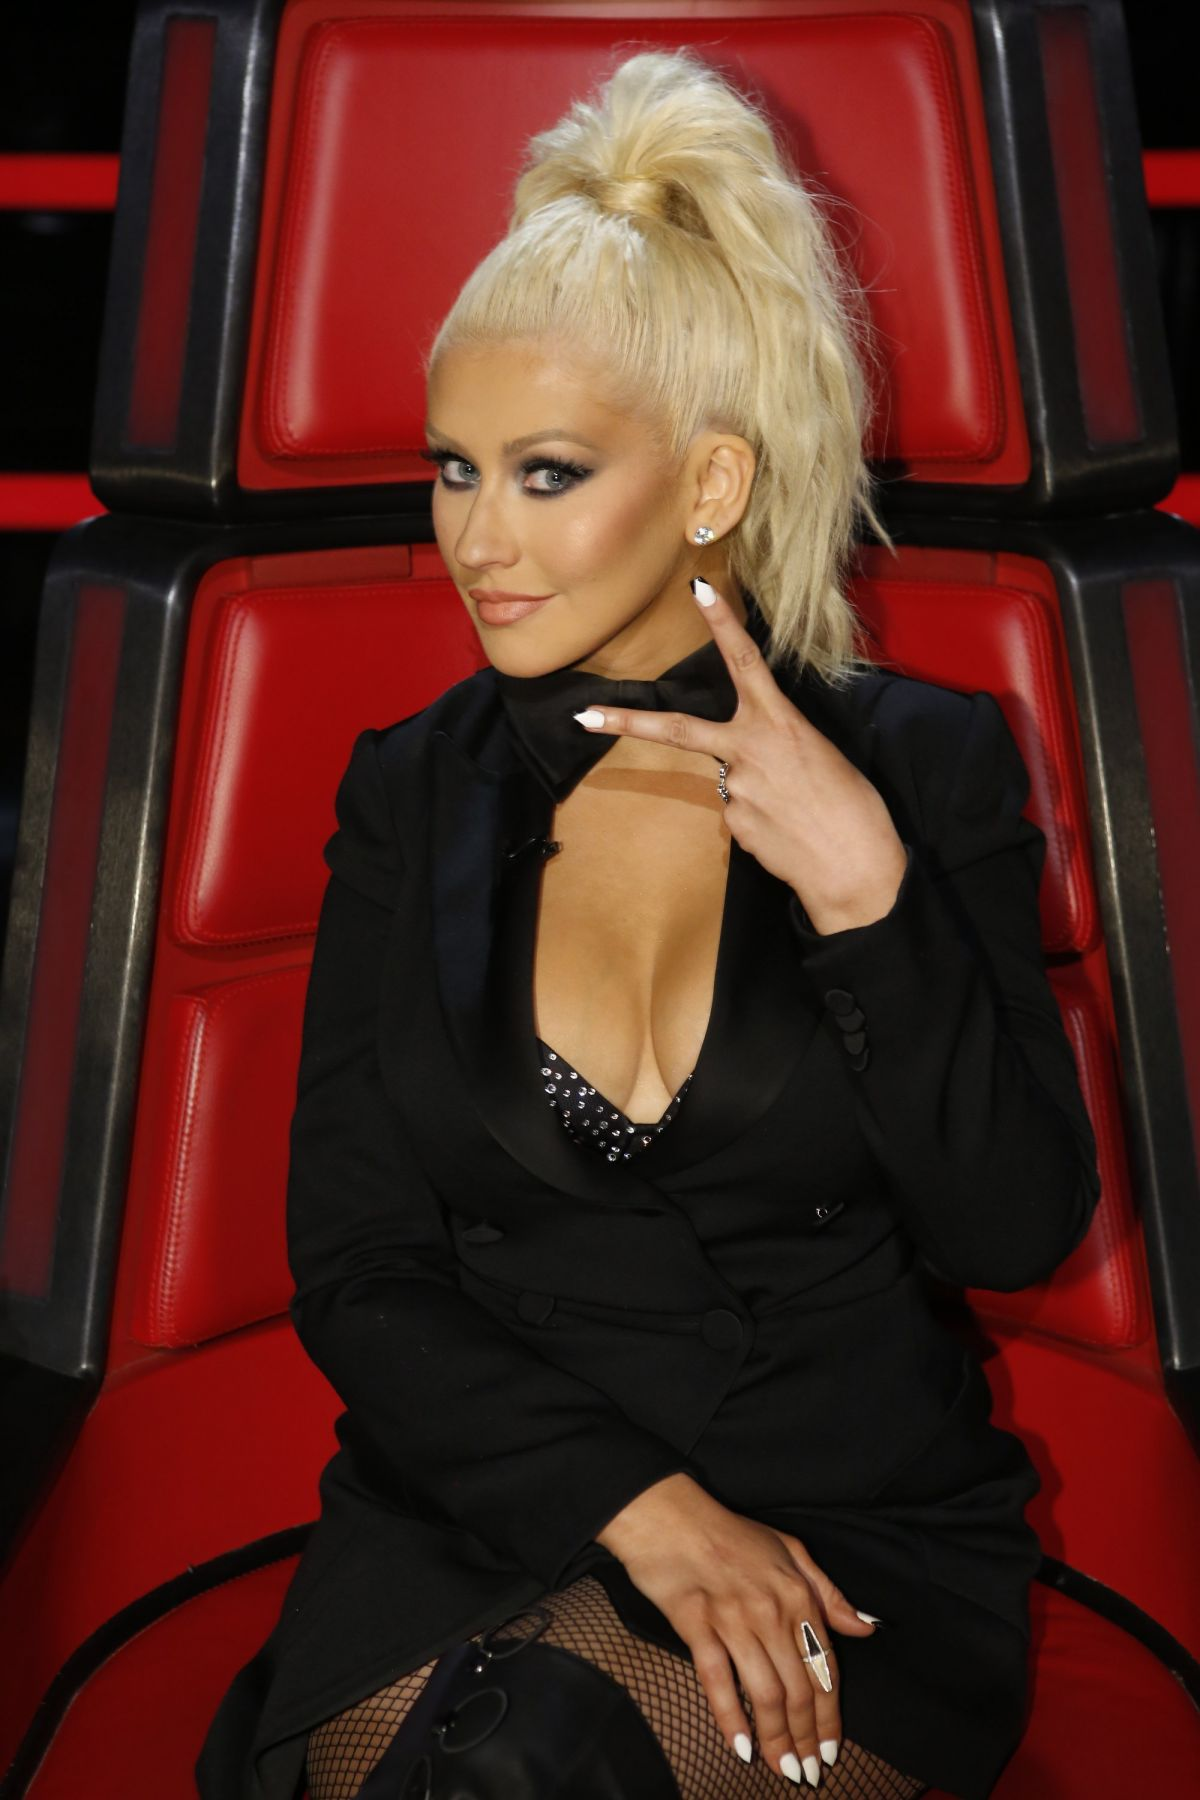 CHRISTINA AGUILERA – The Voice Season 10 Promos - HawtCelebs